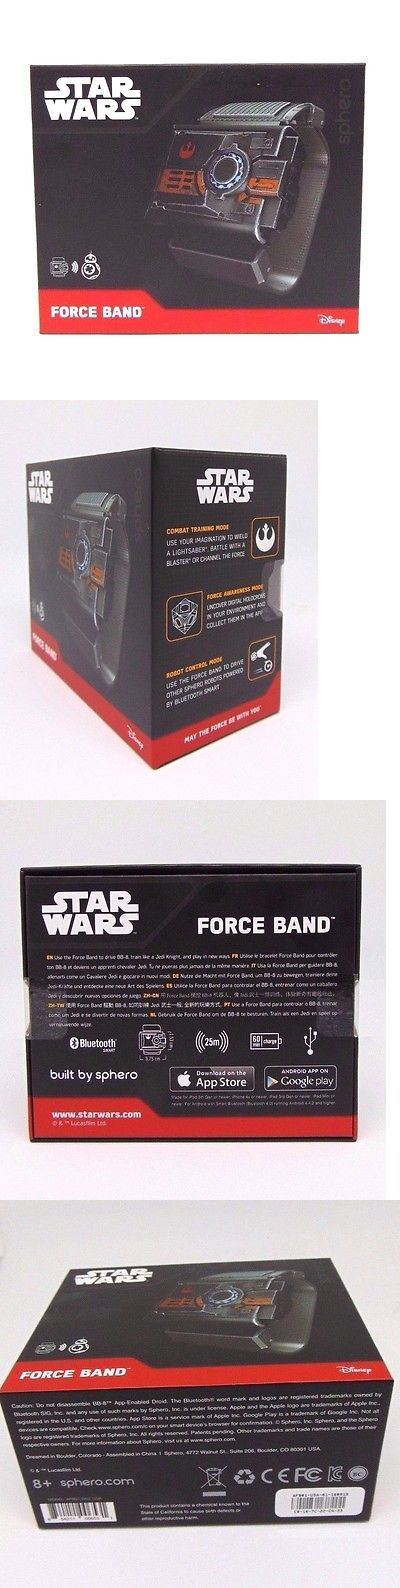 Universe 158725: Sphero Star Wars Force Band Model: Afb01 Bb-8 App Enabled Droid With Bluetooth -> BUY IT NOW ONLY: $55.28 on eBay!